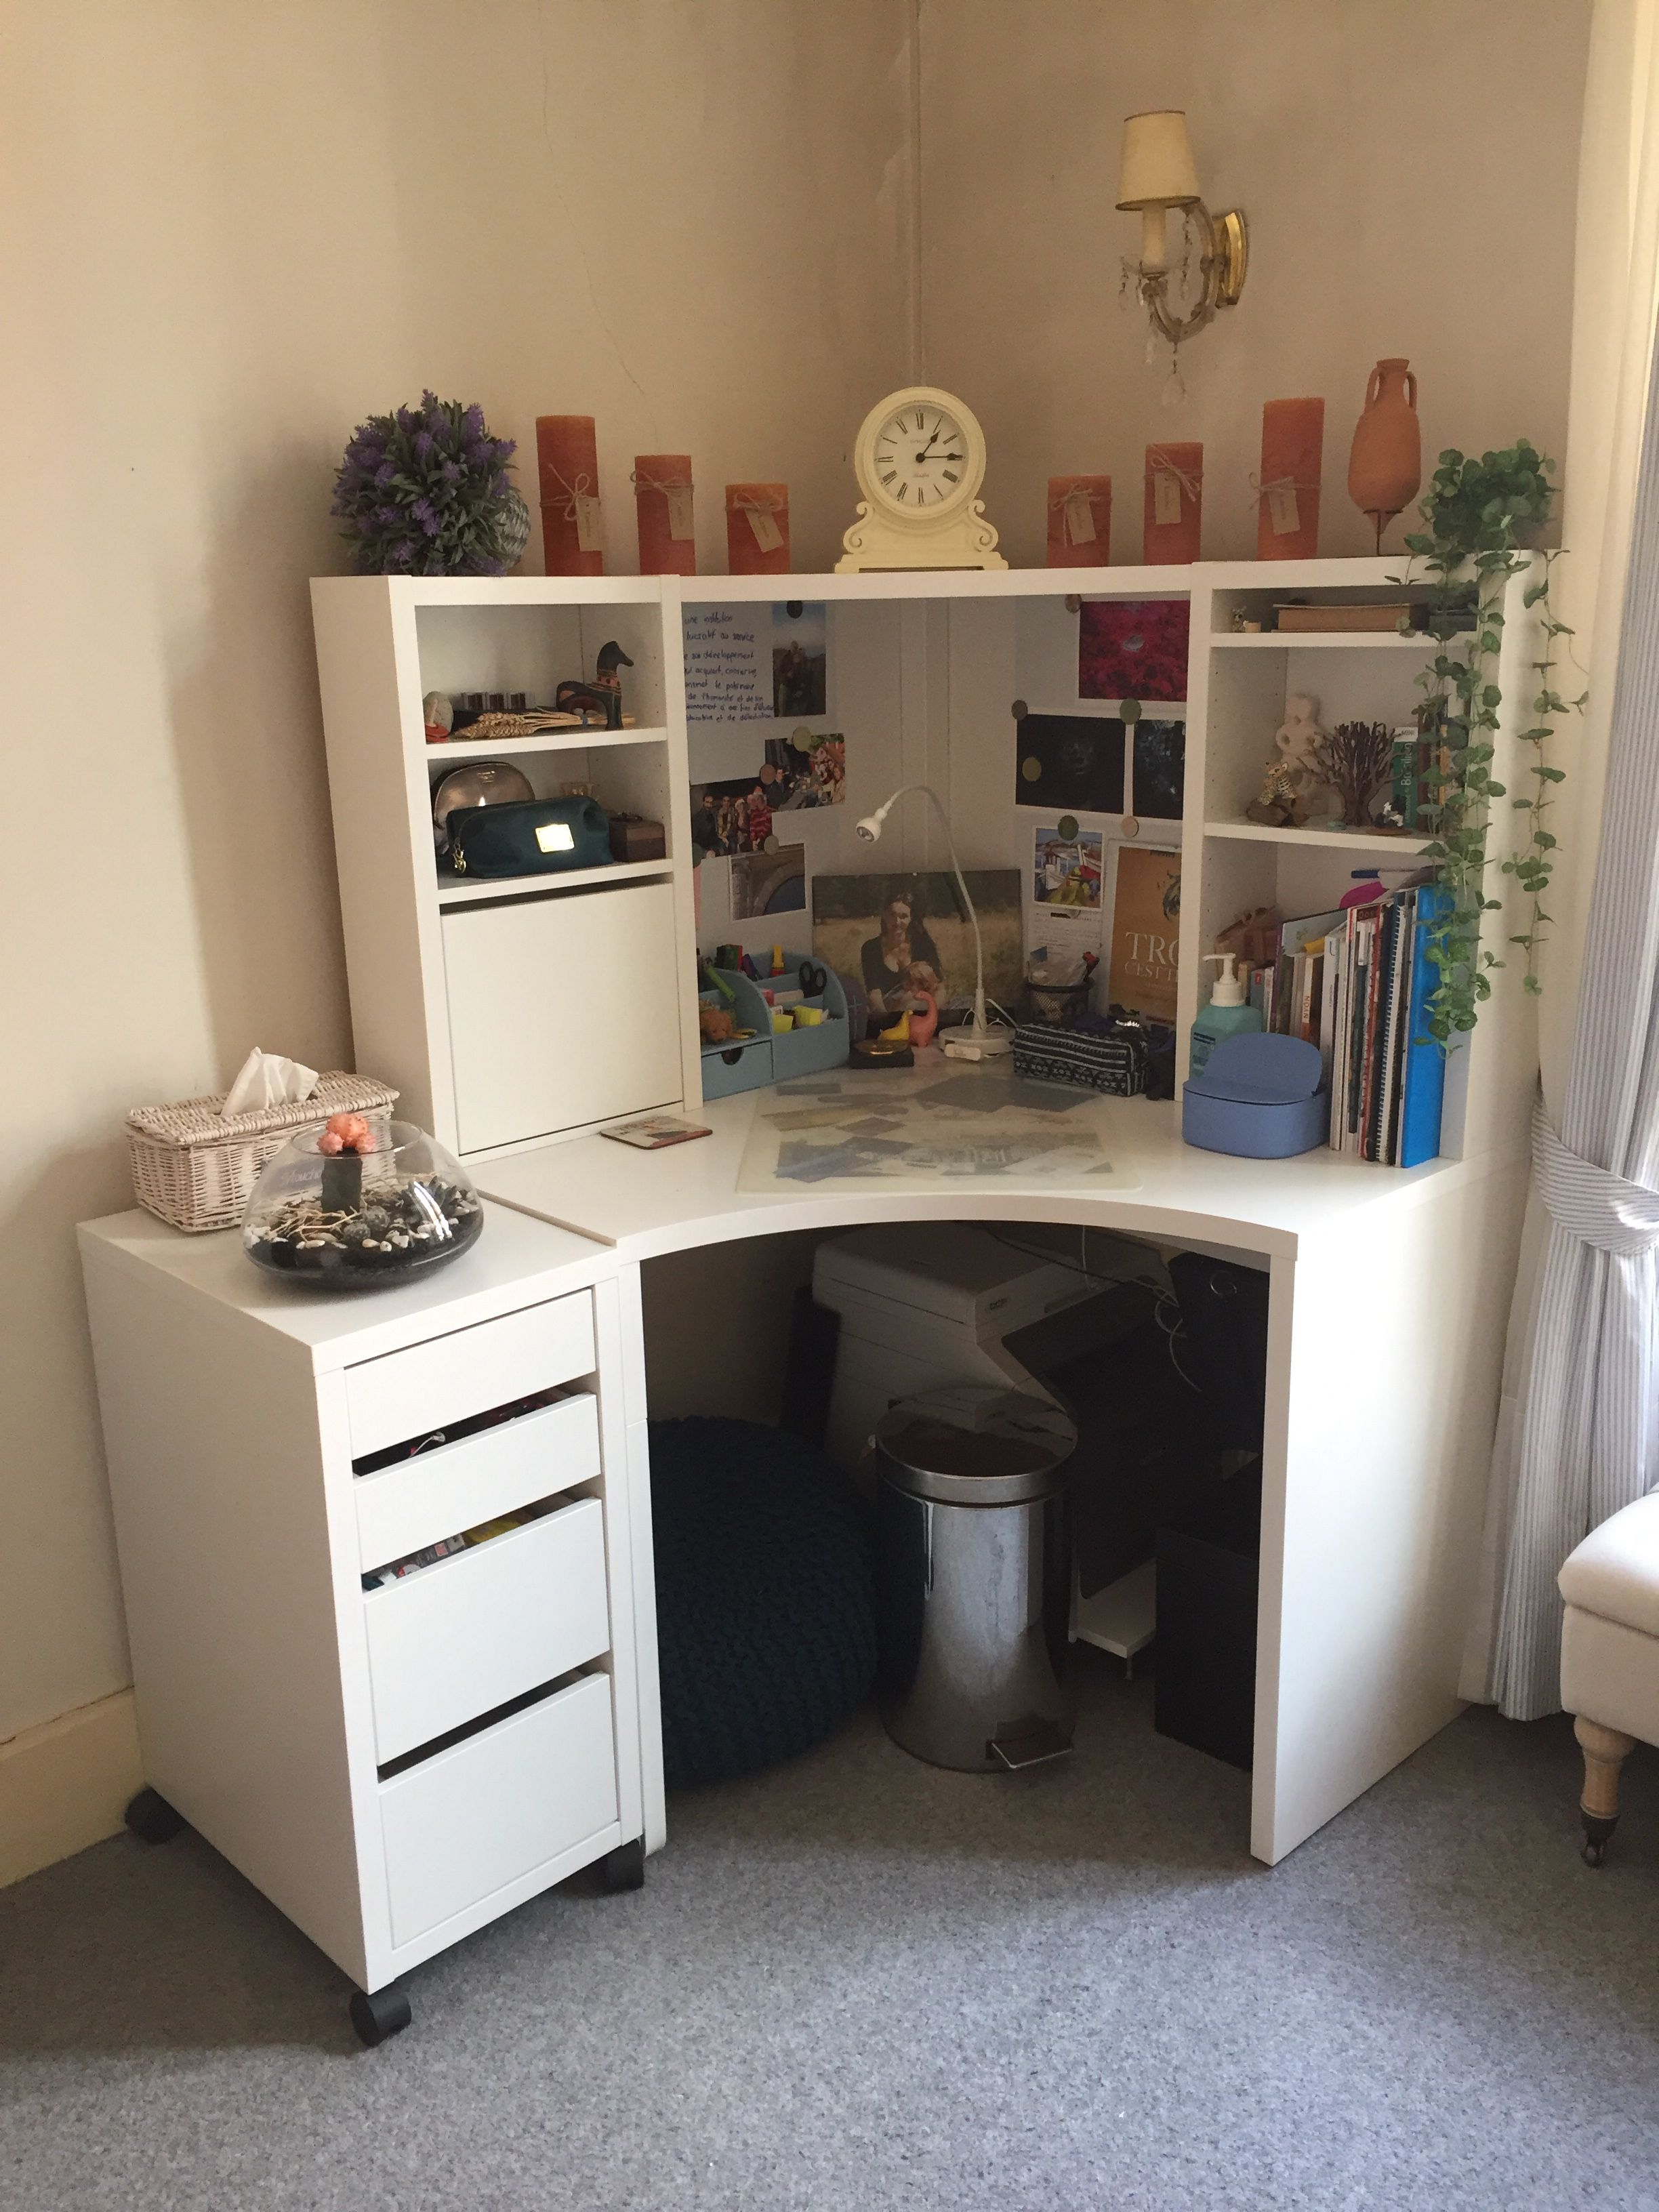 Pin By Sharon Cam On Home Decor And Design In 2020 Bedroom Desk